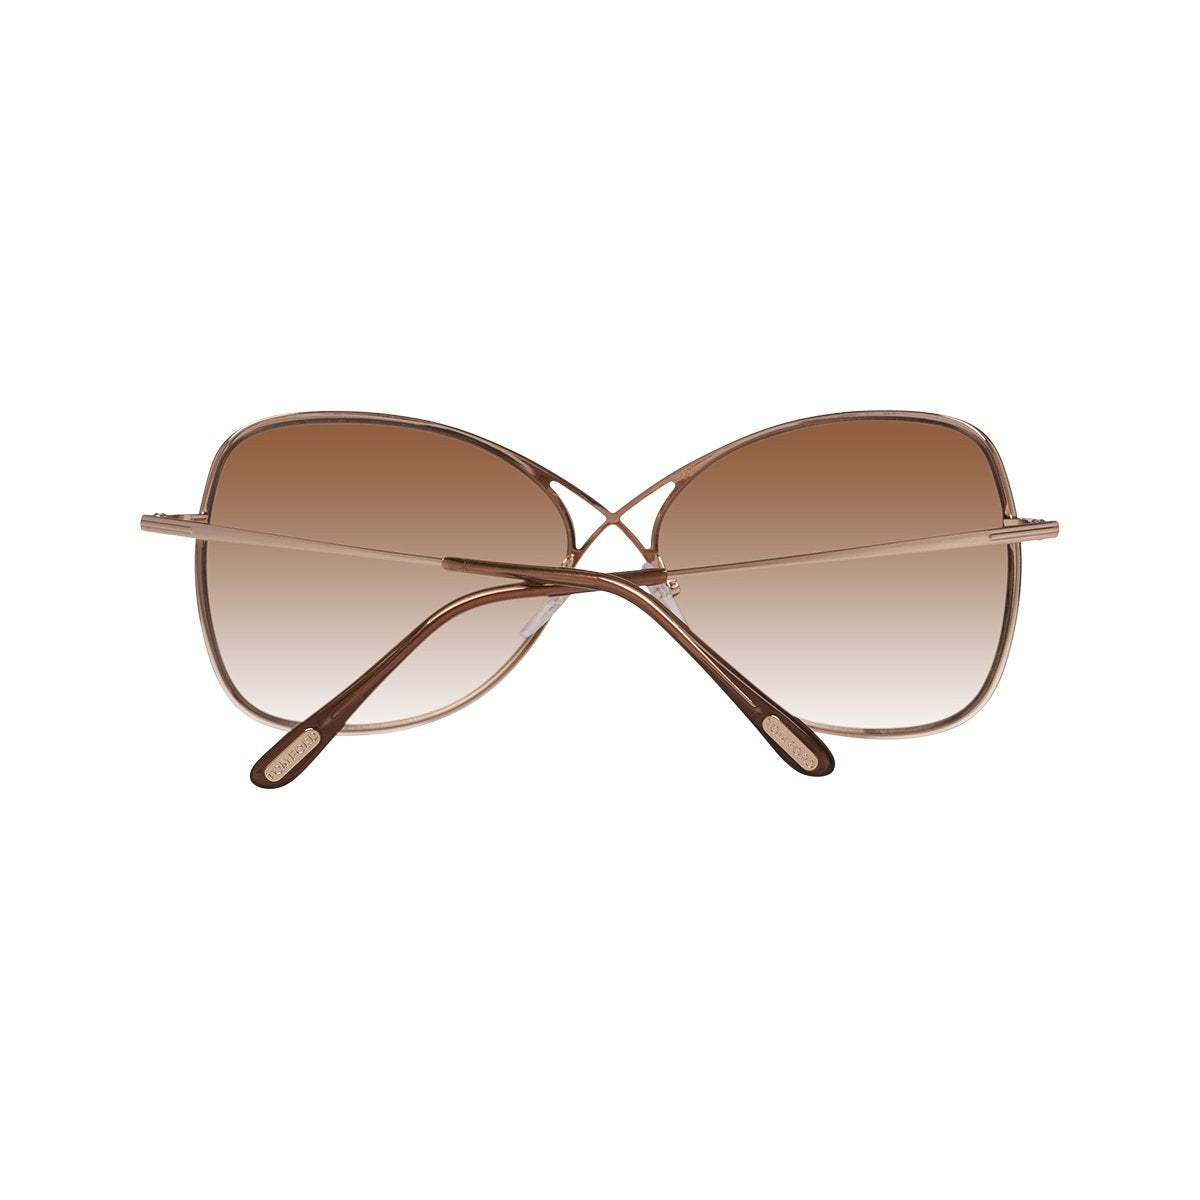 Tom Ford Ladies Sunglasses FT0250 28F 63